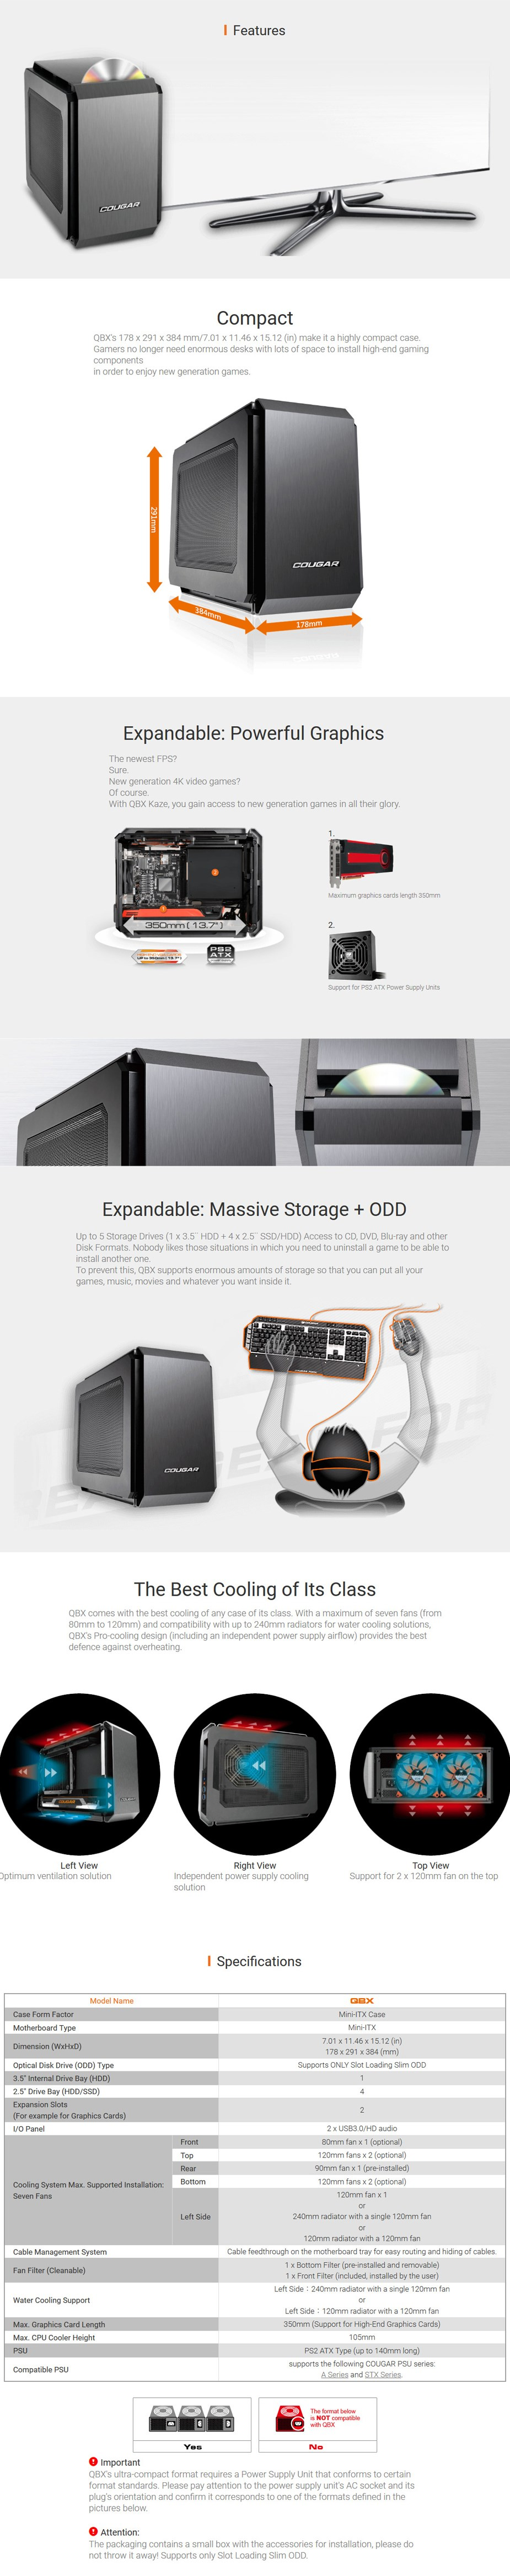 Cougar QBX Mini ITX Case - Desktop Overview 1